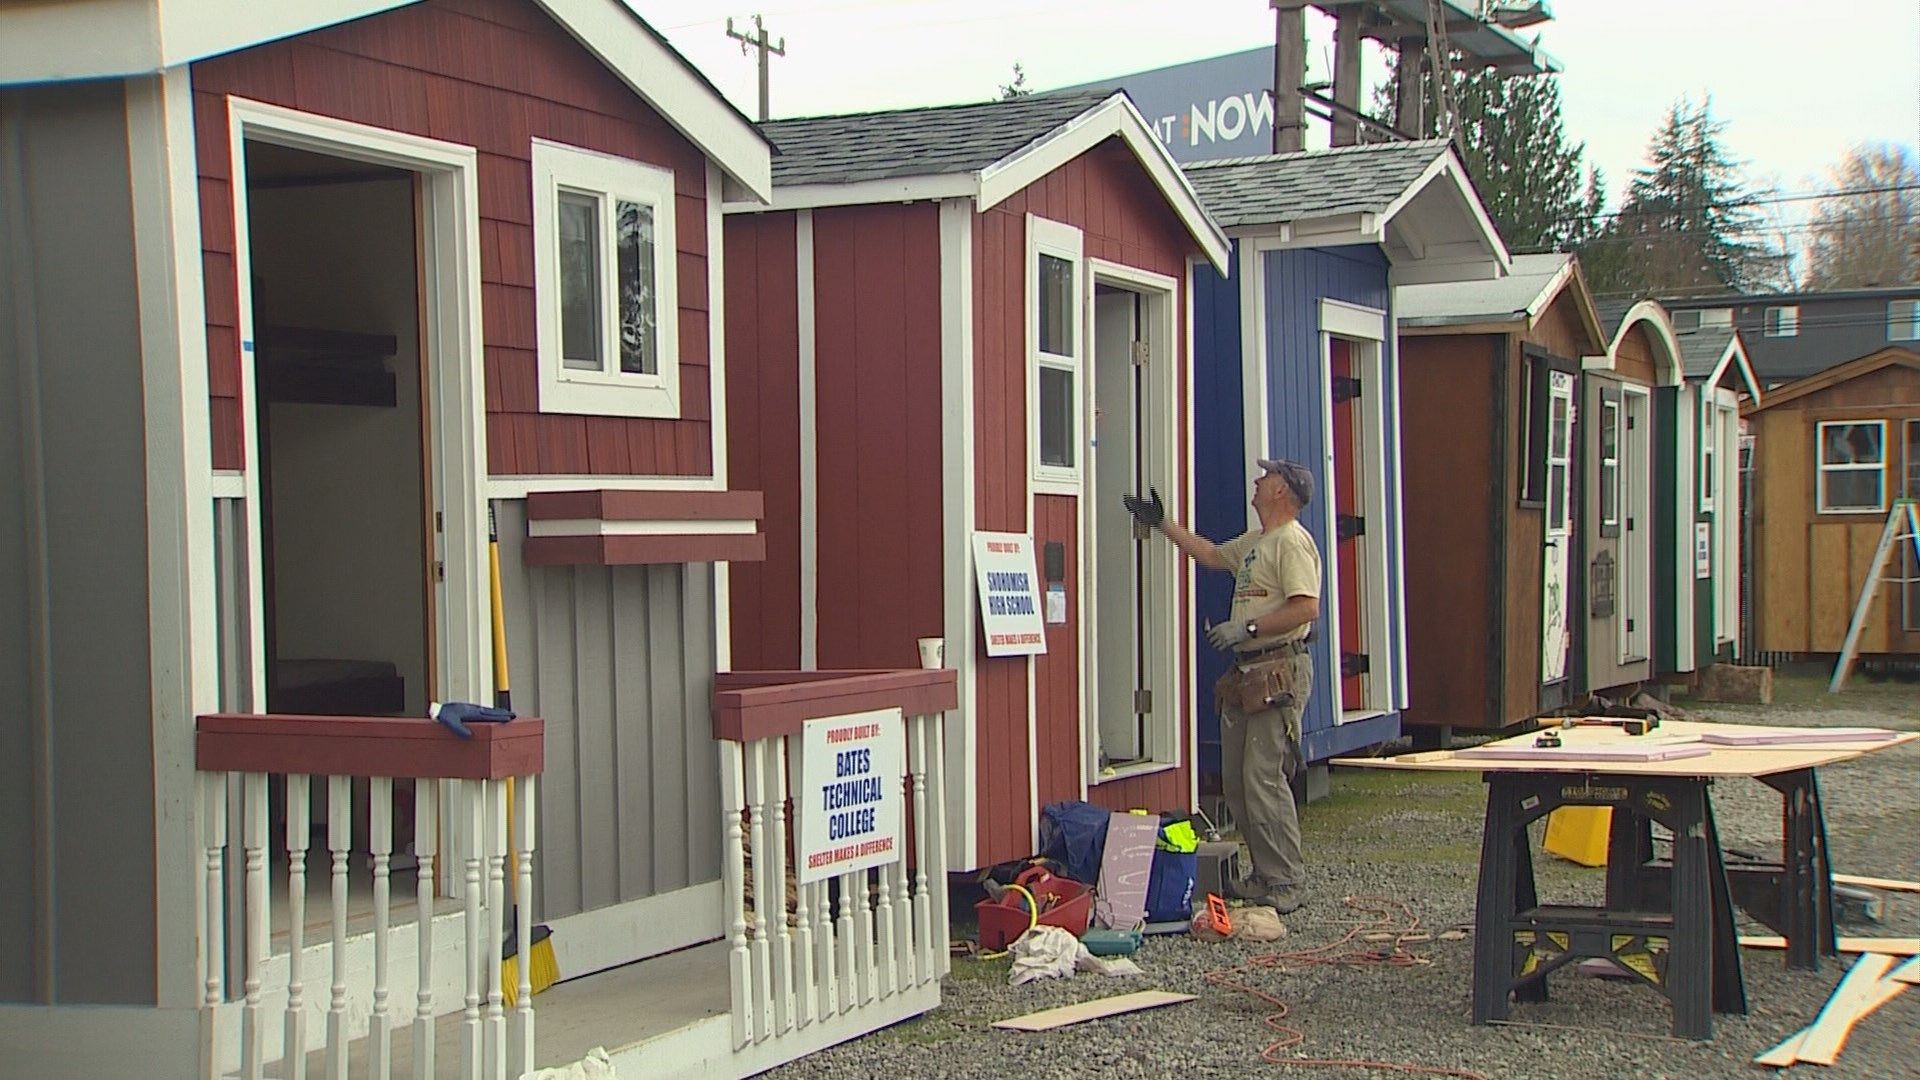 Seattle Opens Its First Tiny House Village For The Homeless In North Seattle In Just A Few Days And Constru Tiny House Village Tiny House Tiny House Community